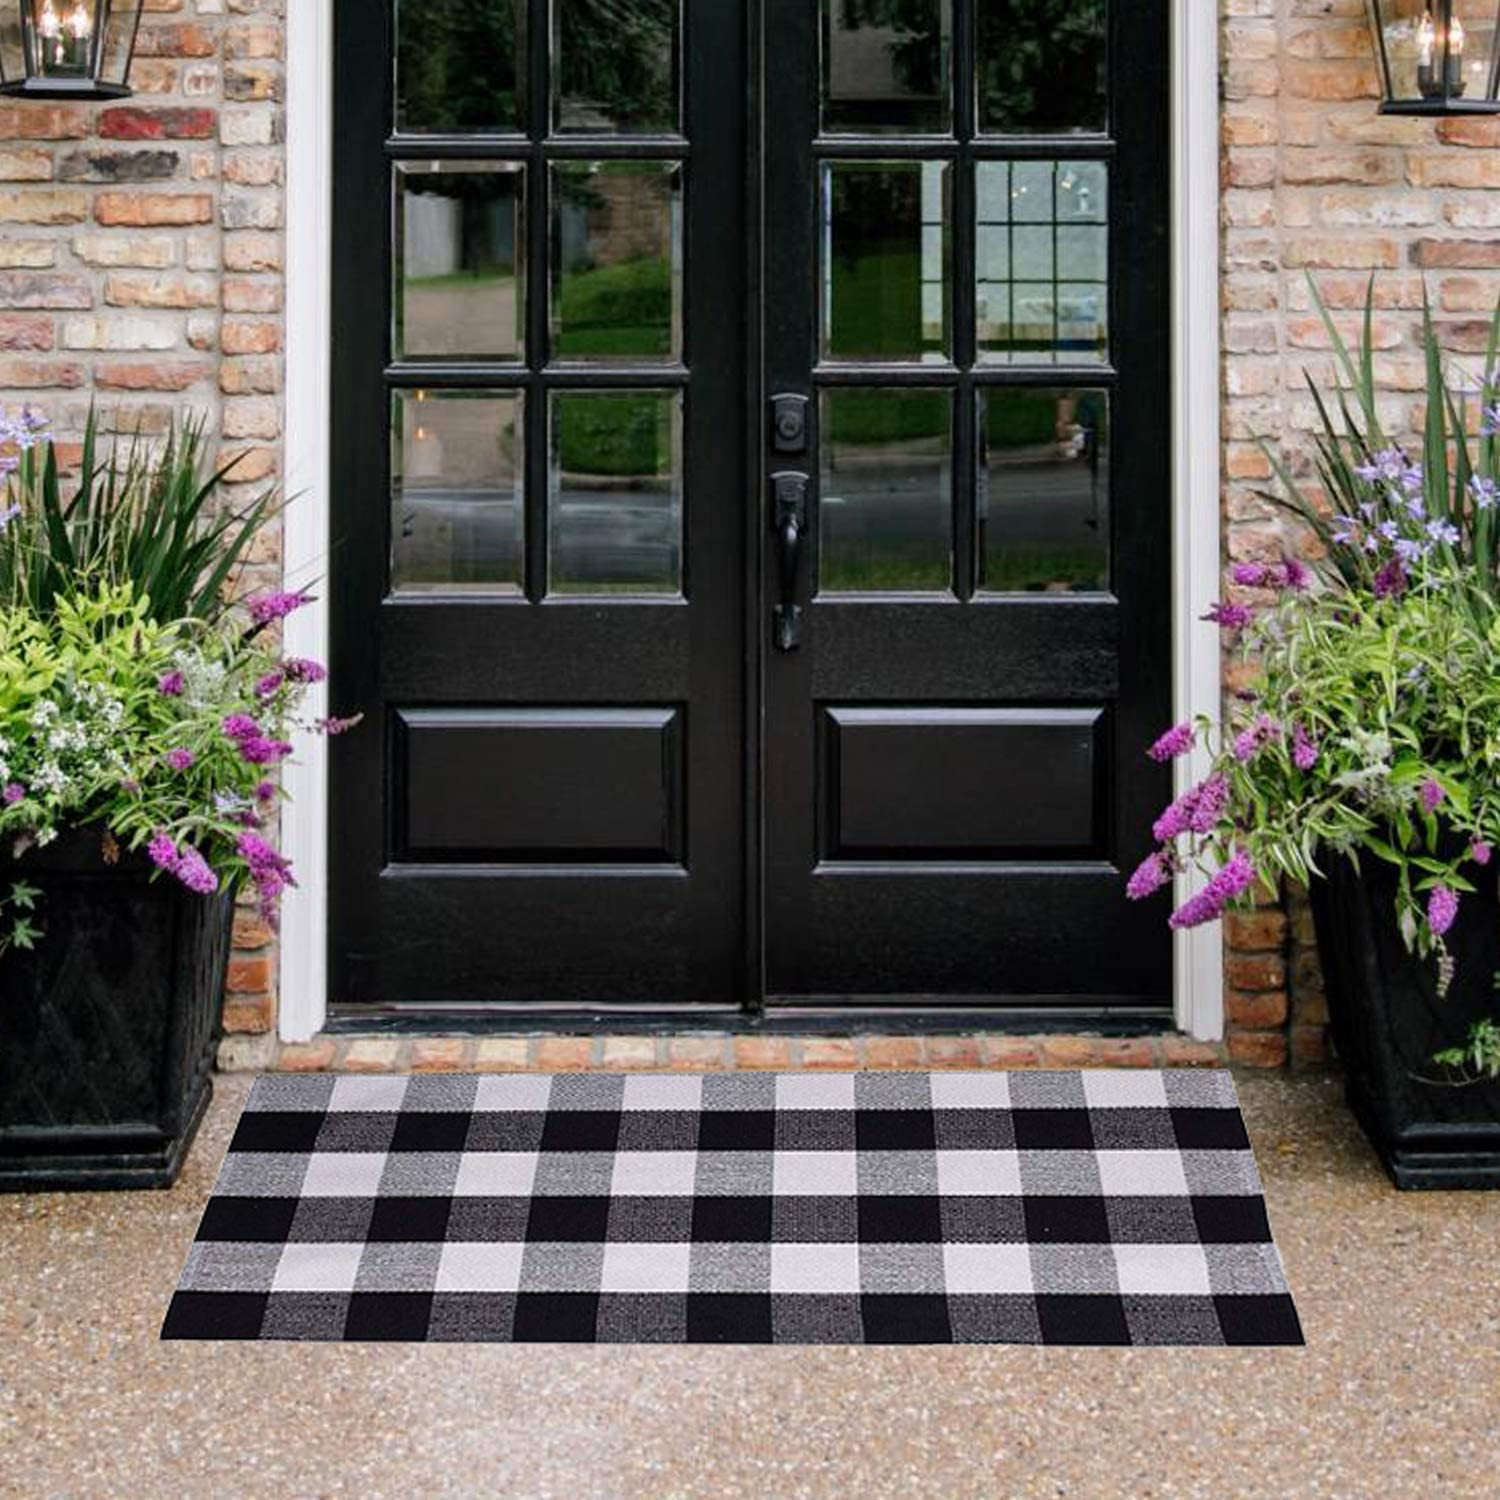 """Buffalo Plaid Rug - YHOUSE Checkered Indoor/Outdoor Door Mat Outdoor Doormat for Front Porch/Kitchen/Laundry Room Welcome Layered Mat (23.6""""X51.2"""", Black and White Plaid)"""